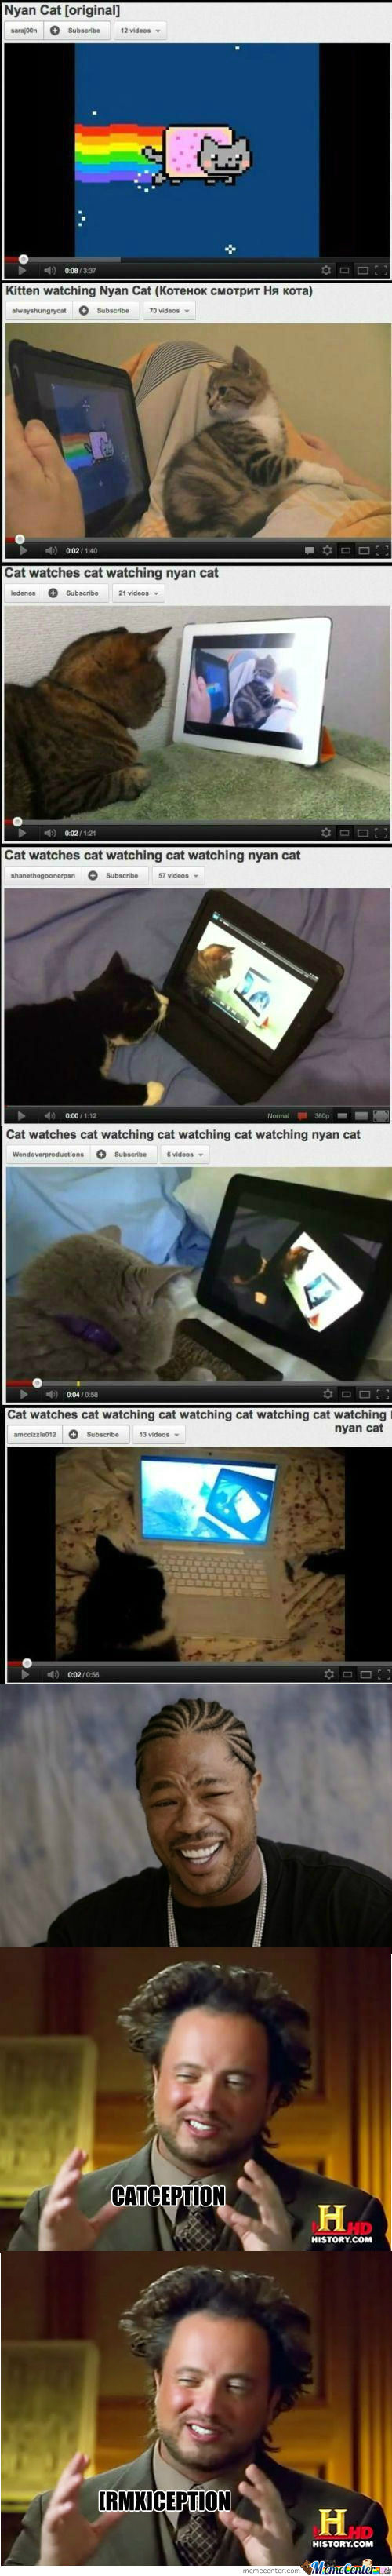 [RMX] [RMX] [RMX] Inception? Catception